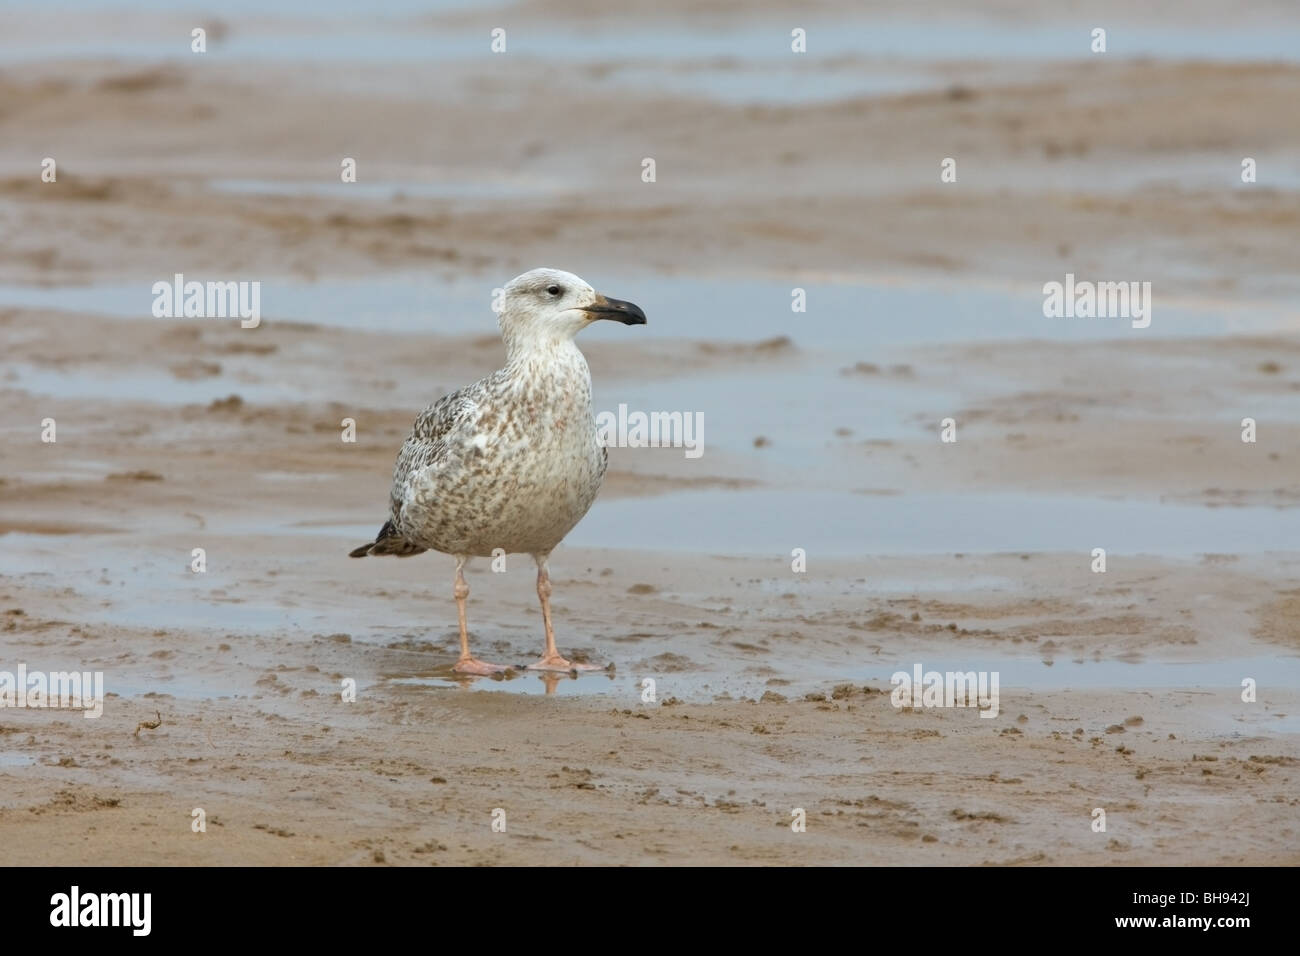 Great Black-backed Gull Larus marinus 1st winter immature perched on the beach - Stock Image